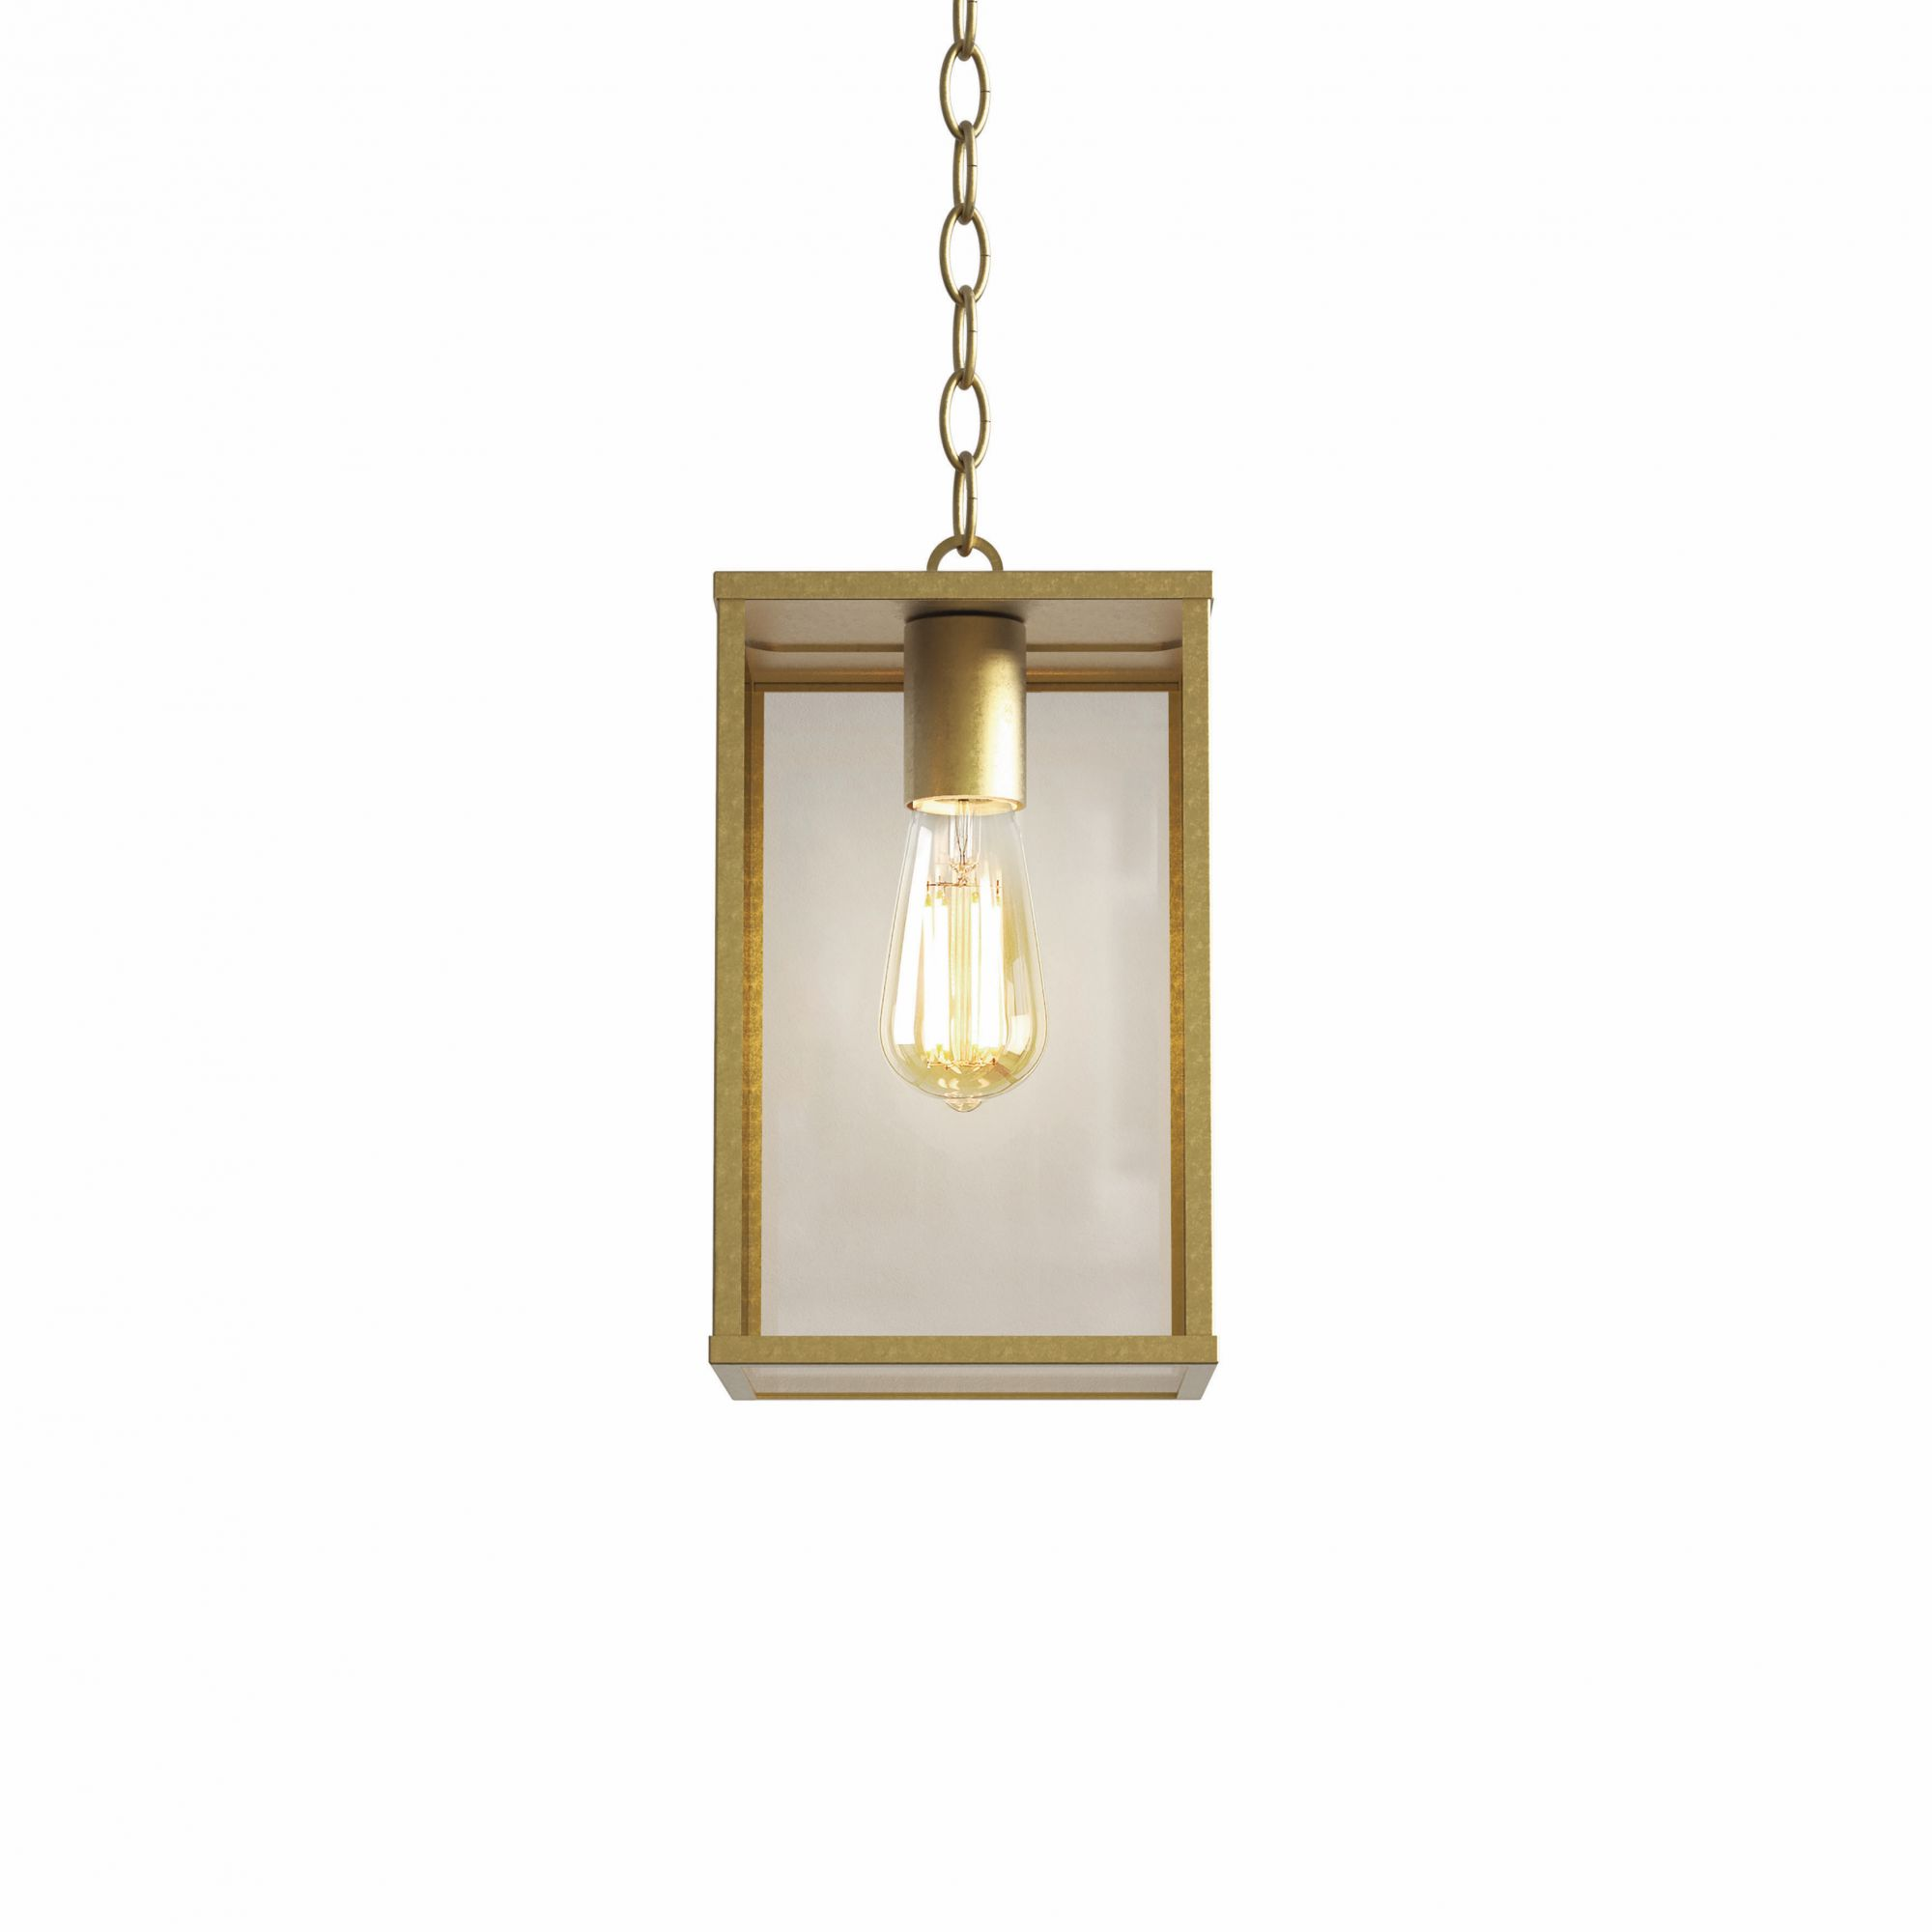 When using green, opt for lighting pieces with brass detailing such as the Homefield pendant lamp from Astro Lighting